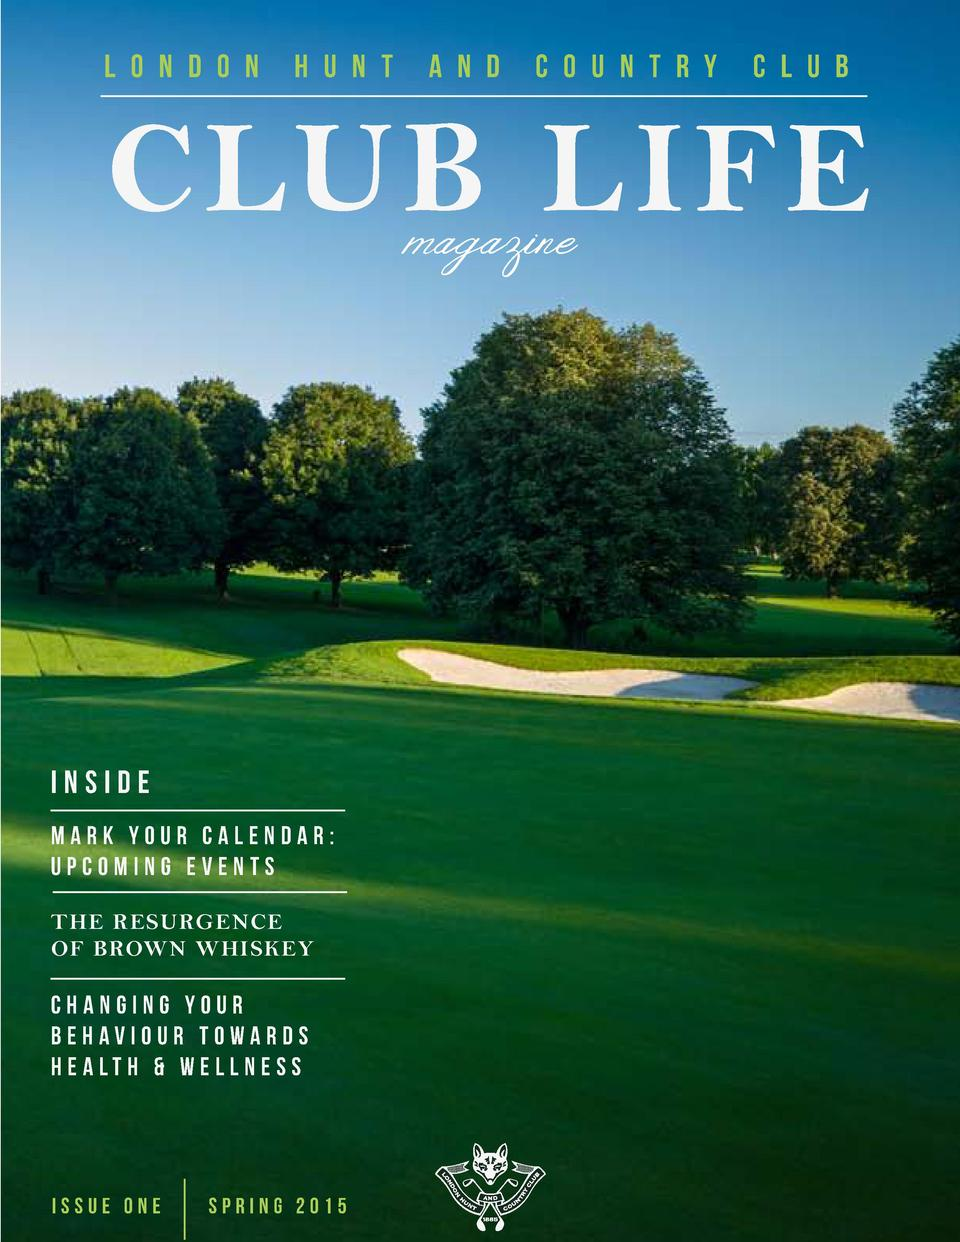 L O N D O N  H U N T  A N D  C O U N T R Y  C L U B  CLUB LIFE magazine  INSIDE MARK YOUR CALENDAR  UPCOMING EVENTS THE RE...